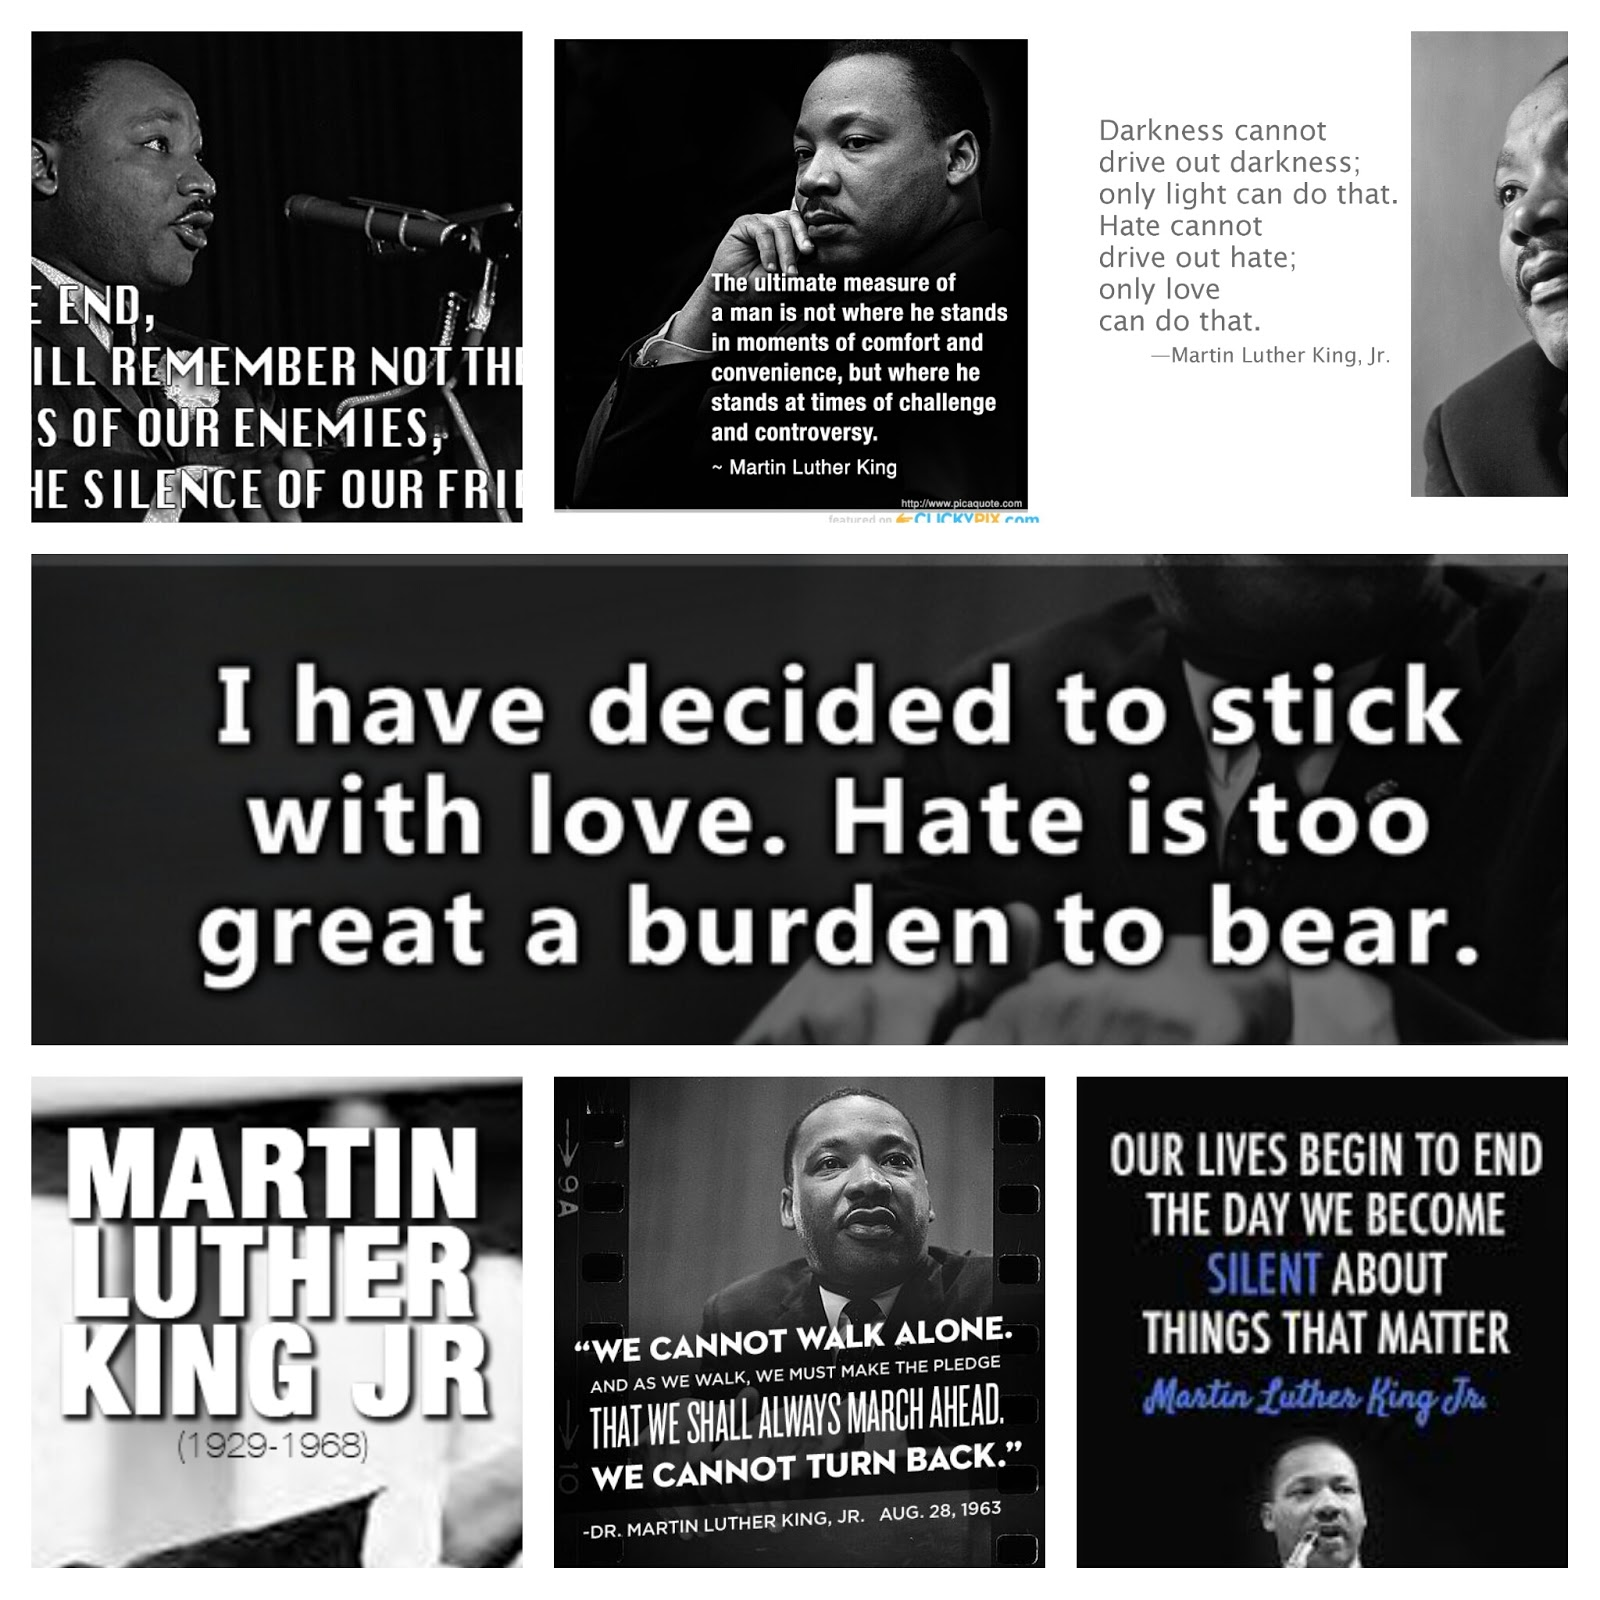 the life of martin luther king jr Martin luther king jr  martin luther king dedicated his life to love and to justice  for his fellow human beings, and he died because of that effort in this difficult.